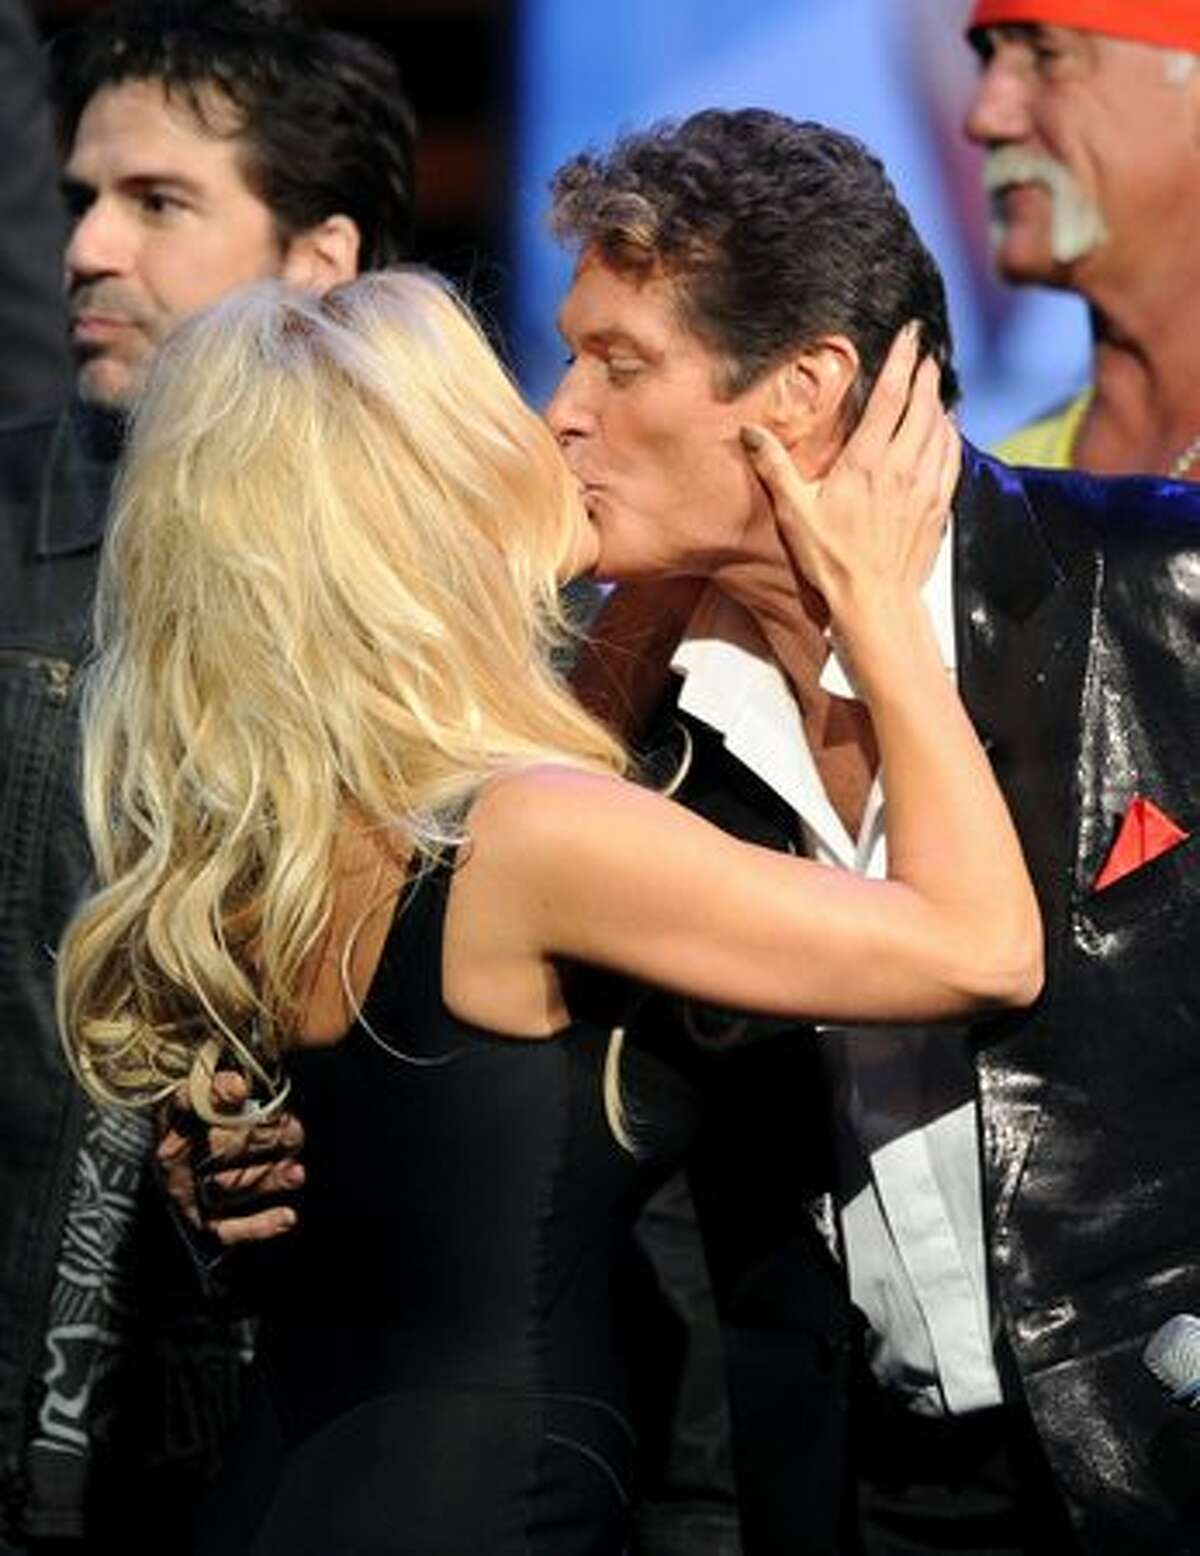 Actor David Hasselhoff (R) kisses actress Pamela Anderson onstage at the Comedy Central Roast of David Hasselhoff held at Sony Pictures Studios in Culver City, California.